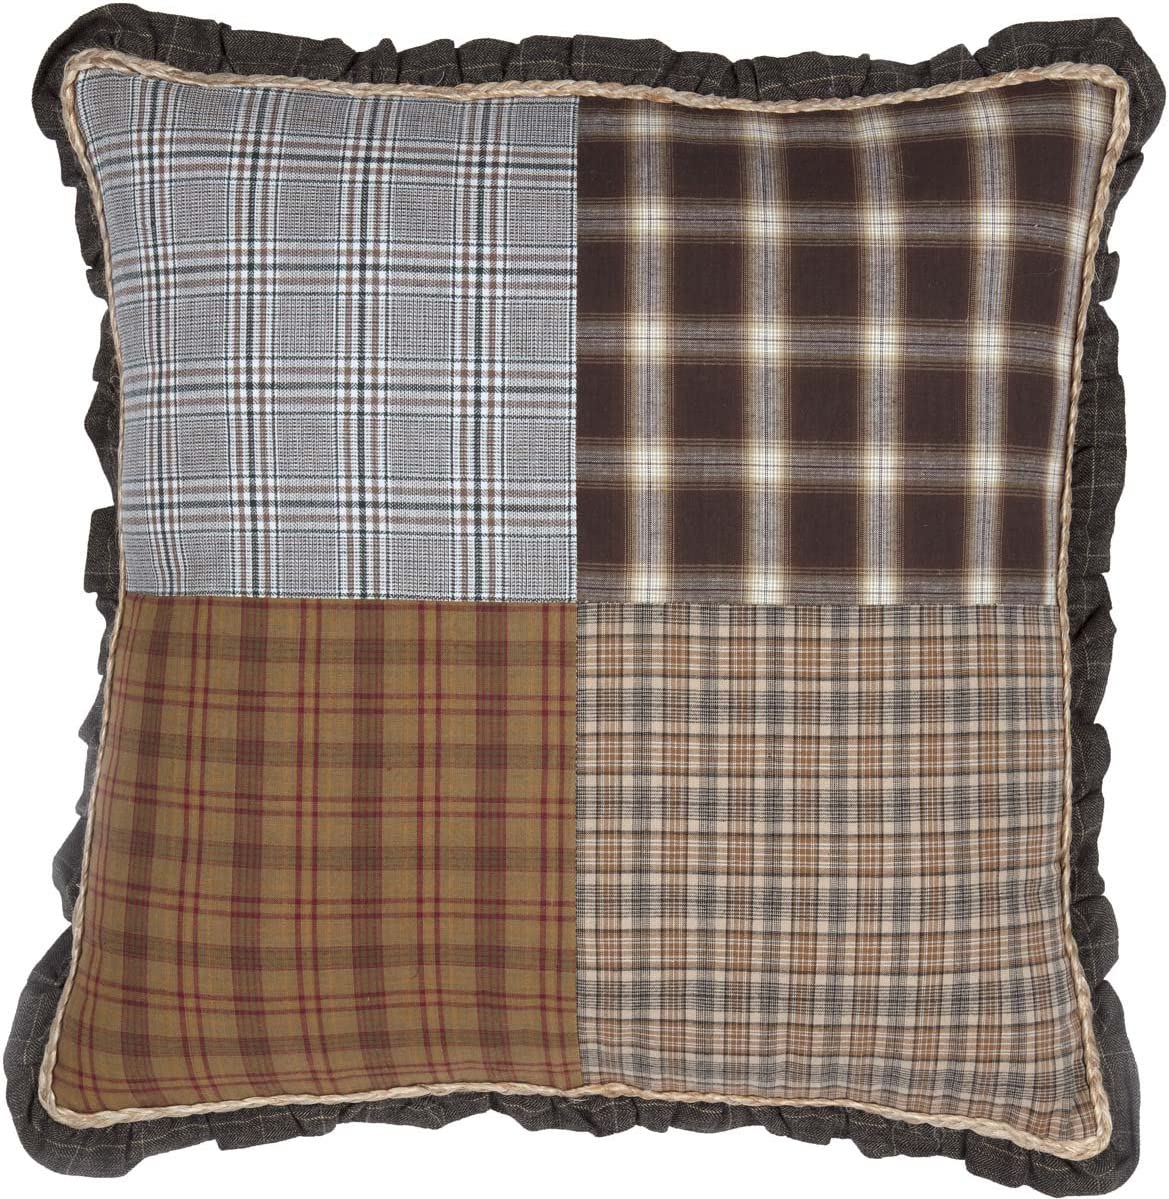 Price New product! New type reduction VHC Brands Rustic Lodge Farmhouse Pillows Throws - Grey Rory